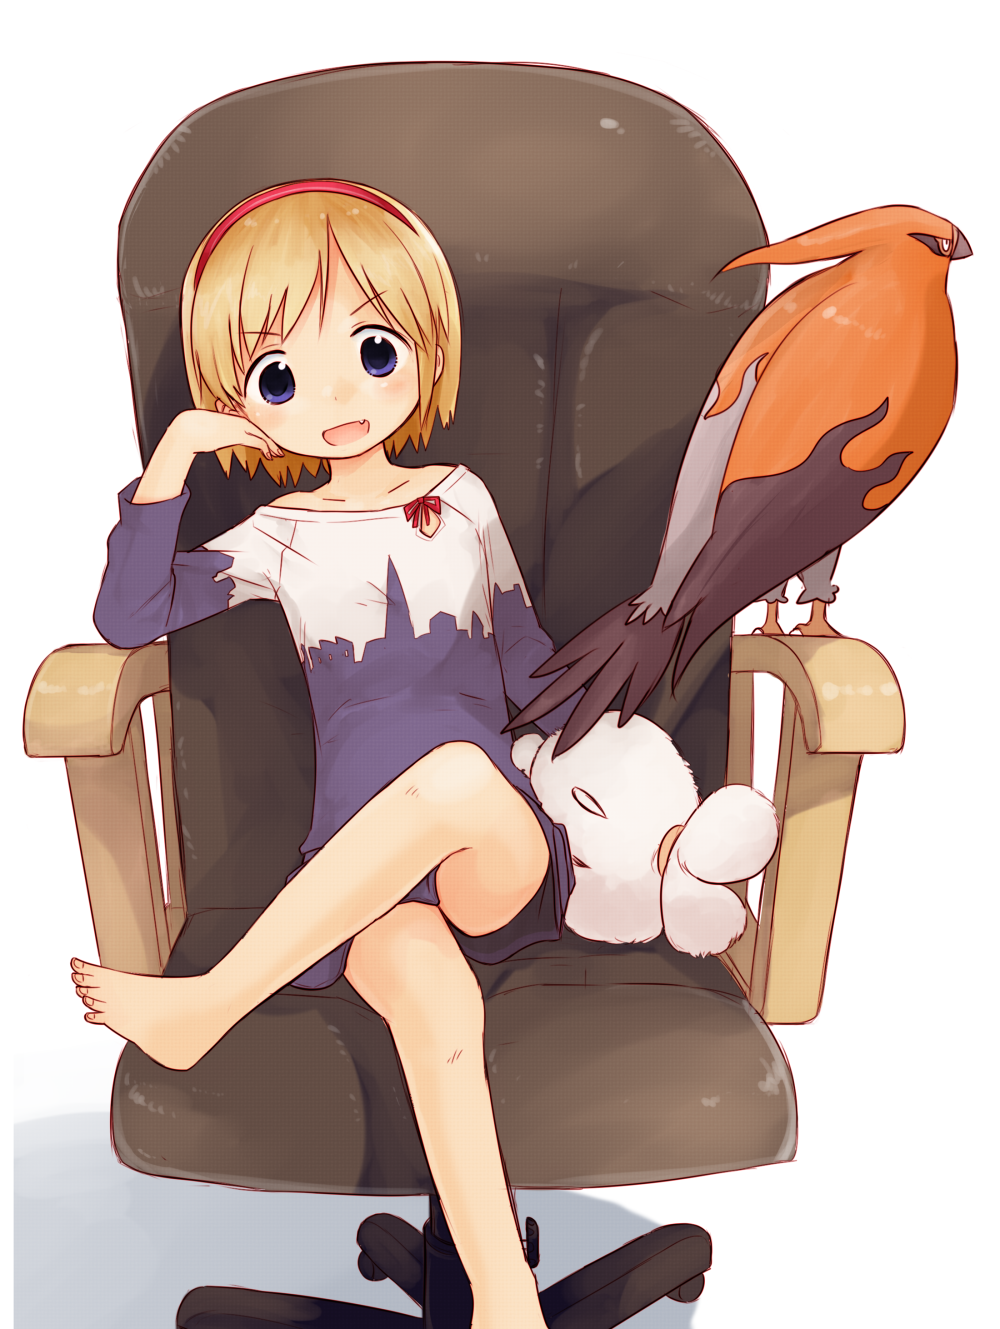 1girl alice_margatroid alternate_costume bangs barefoot bird blonde_hair blue_shirt blue_shorts blush chair commentary_request cookie_(touhou) crossed_legs eyebrows_visible_through_hair fang foot_out_of_frame gen_6_pokemon hairband head_rest highres looking_at_viewer miyako_(naotsugu) office_chair open_mouth pokemon red_hairband shirt short_hair shorts simple_background sitting stuffed_animal stuffed_bunny stuffed_toy taisa_(cookie) talonflame touhou white_background